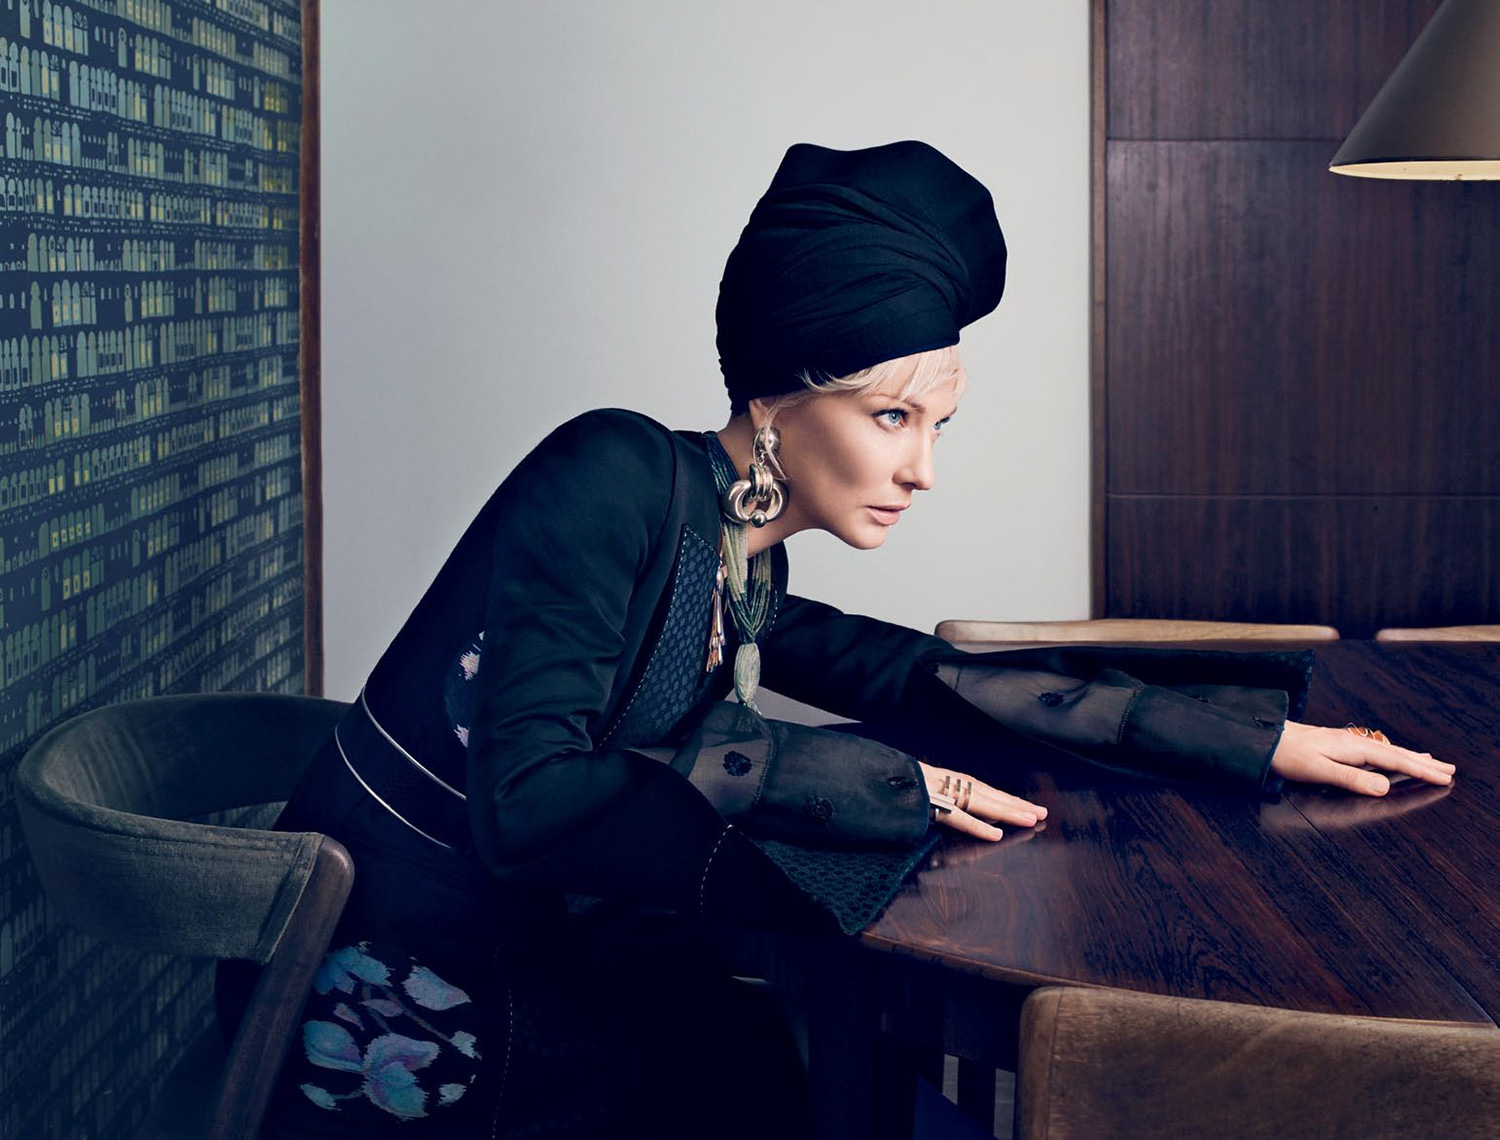 Cate Blanchett for Vogue Australia April 2015. Photo by Emma Summerton   Yellowtrace